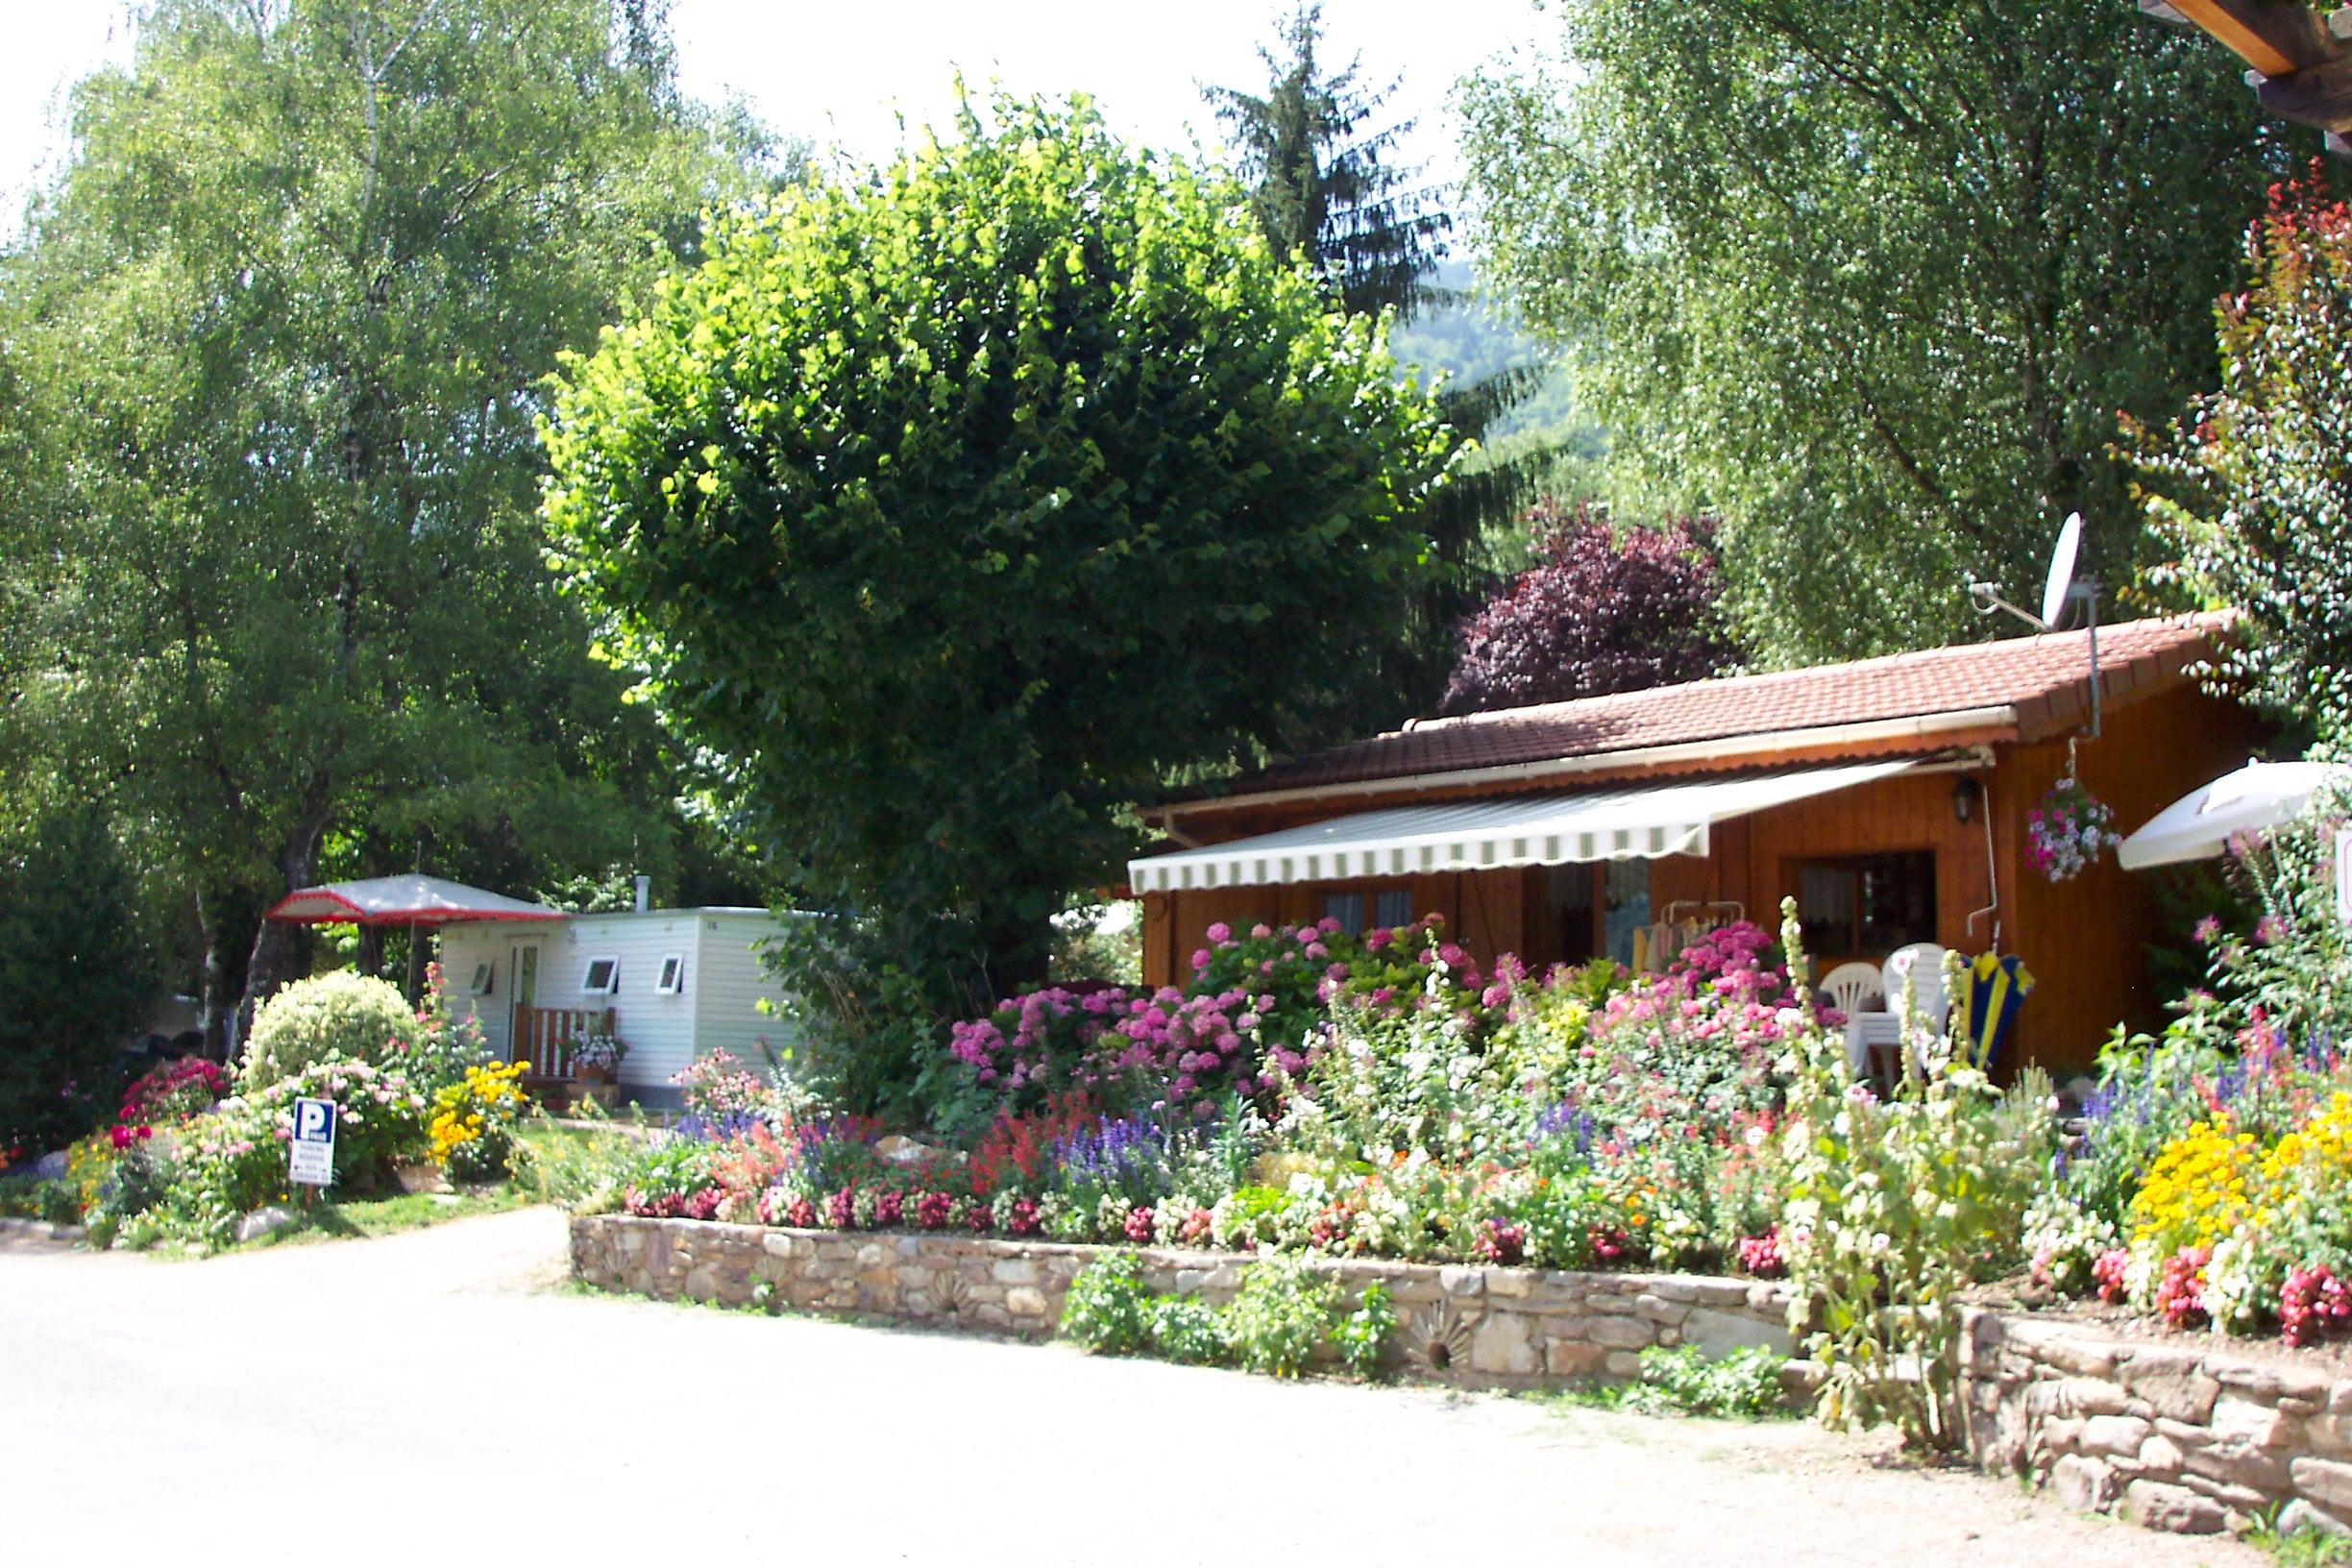 Accommodation - Chalet With Private Facilities - Camping Clair Matin